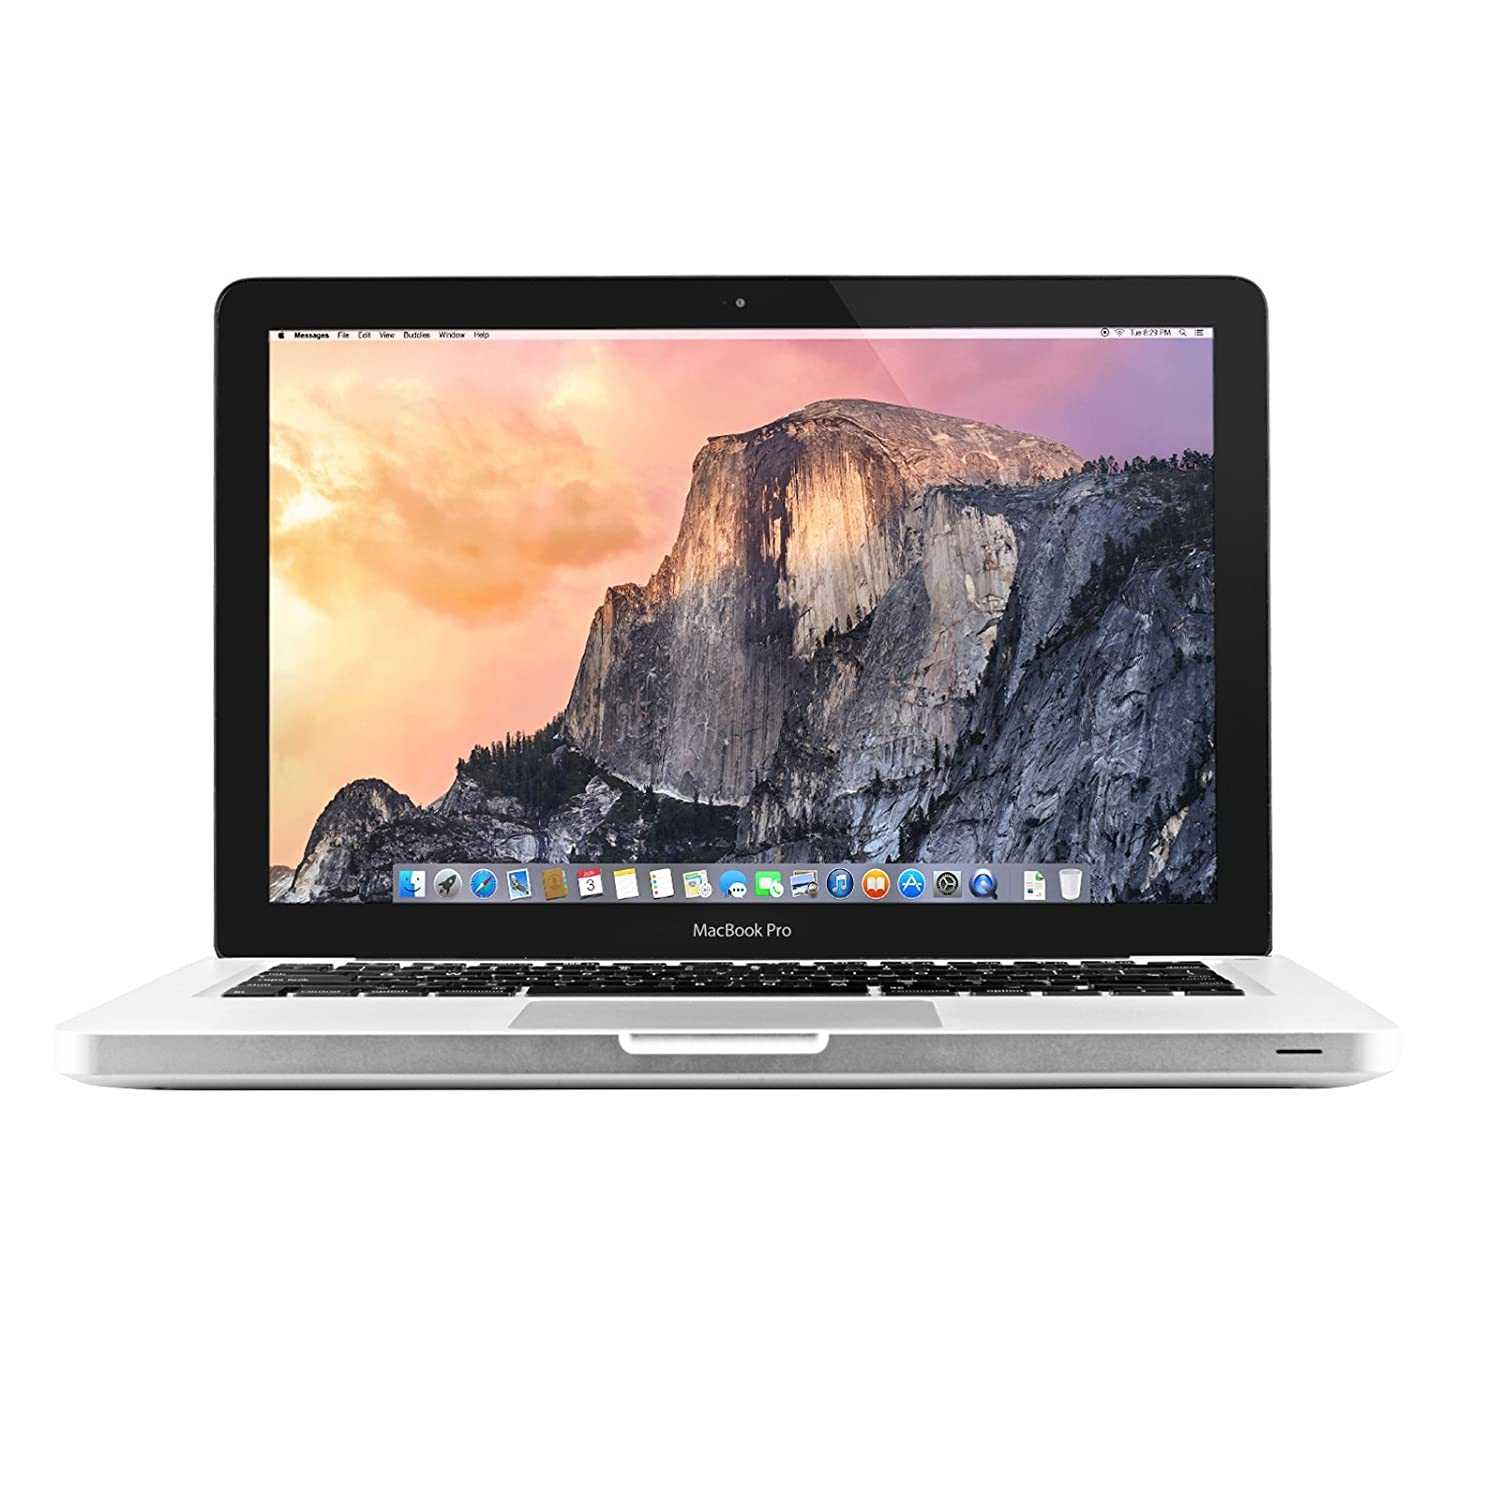 Folkekære Amazon.com: Apple MacBook Pro MD101LL/A 13.3-inch Laptop (2.5Ghz IH-36